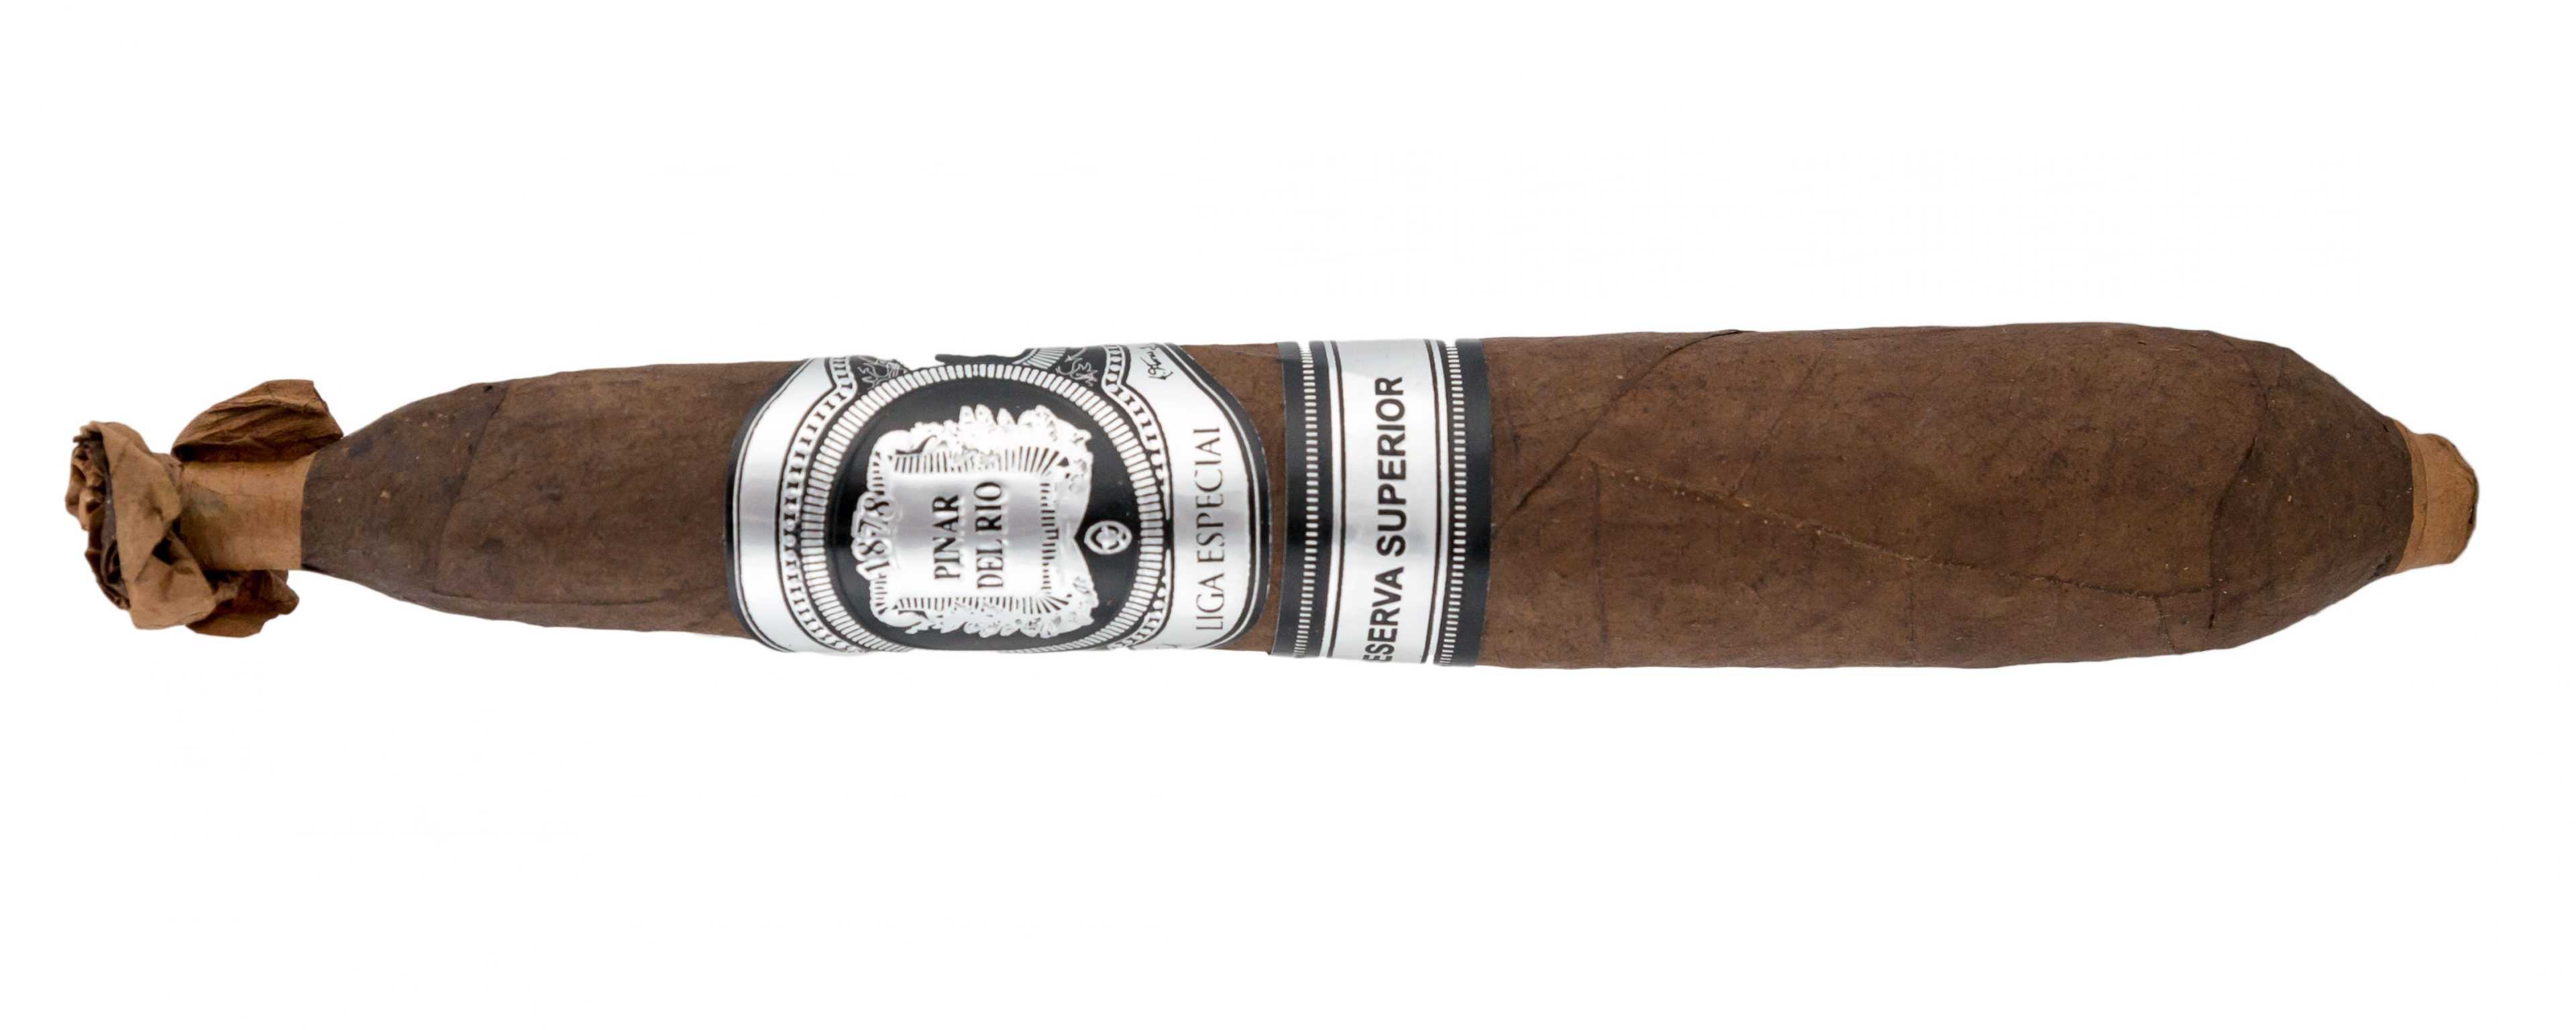 Quick Cigar Review: Pinar del Rio | Reserva Superior Salomon